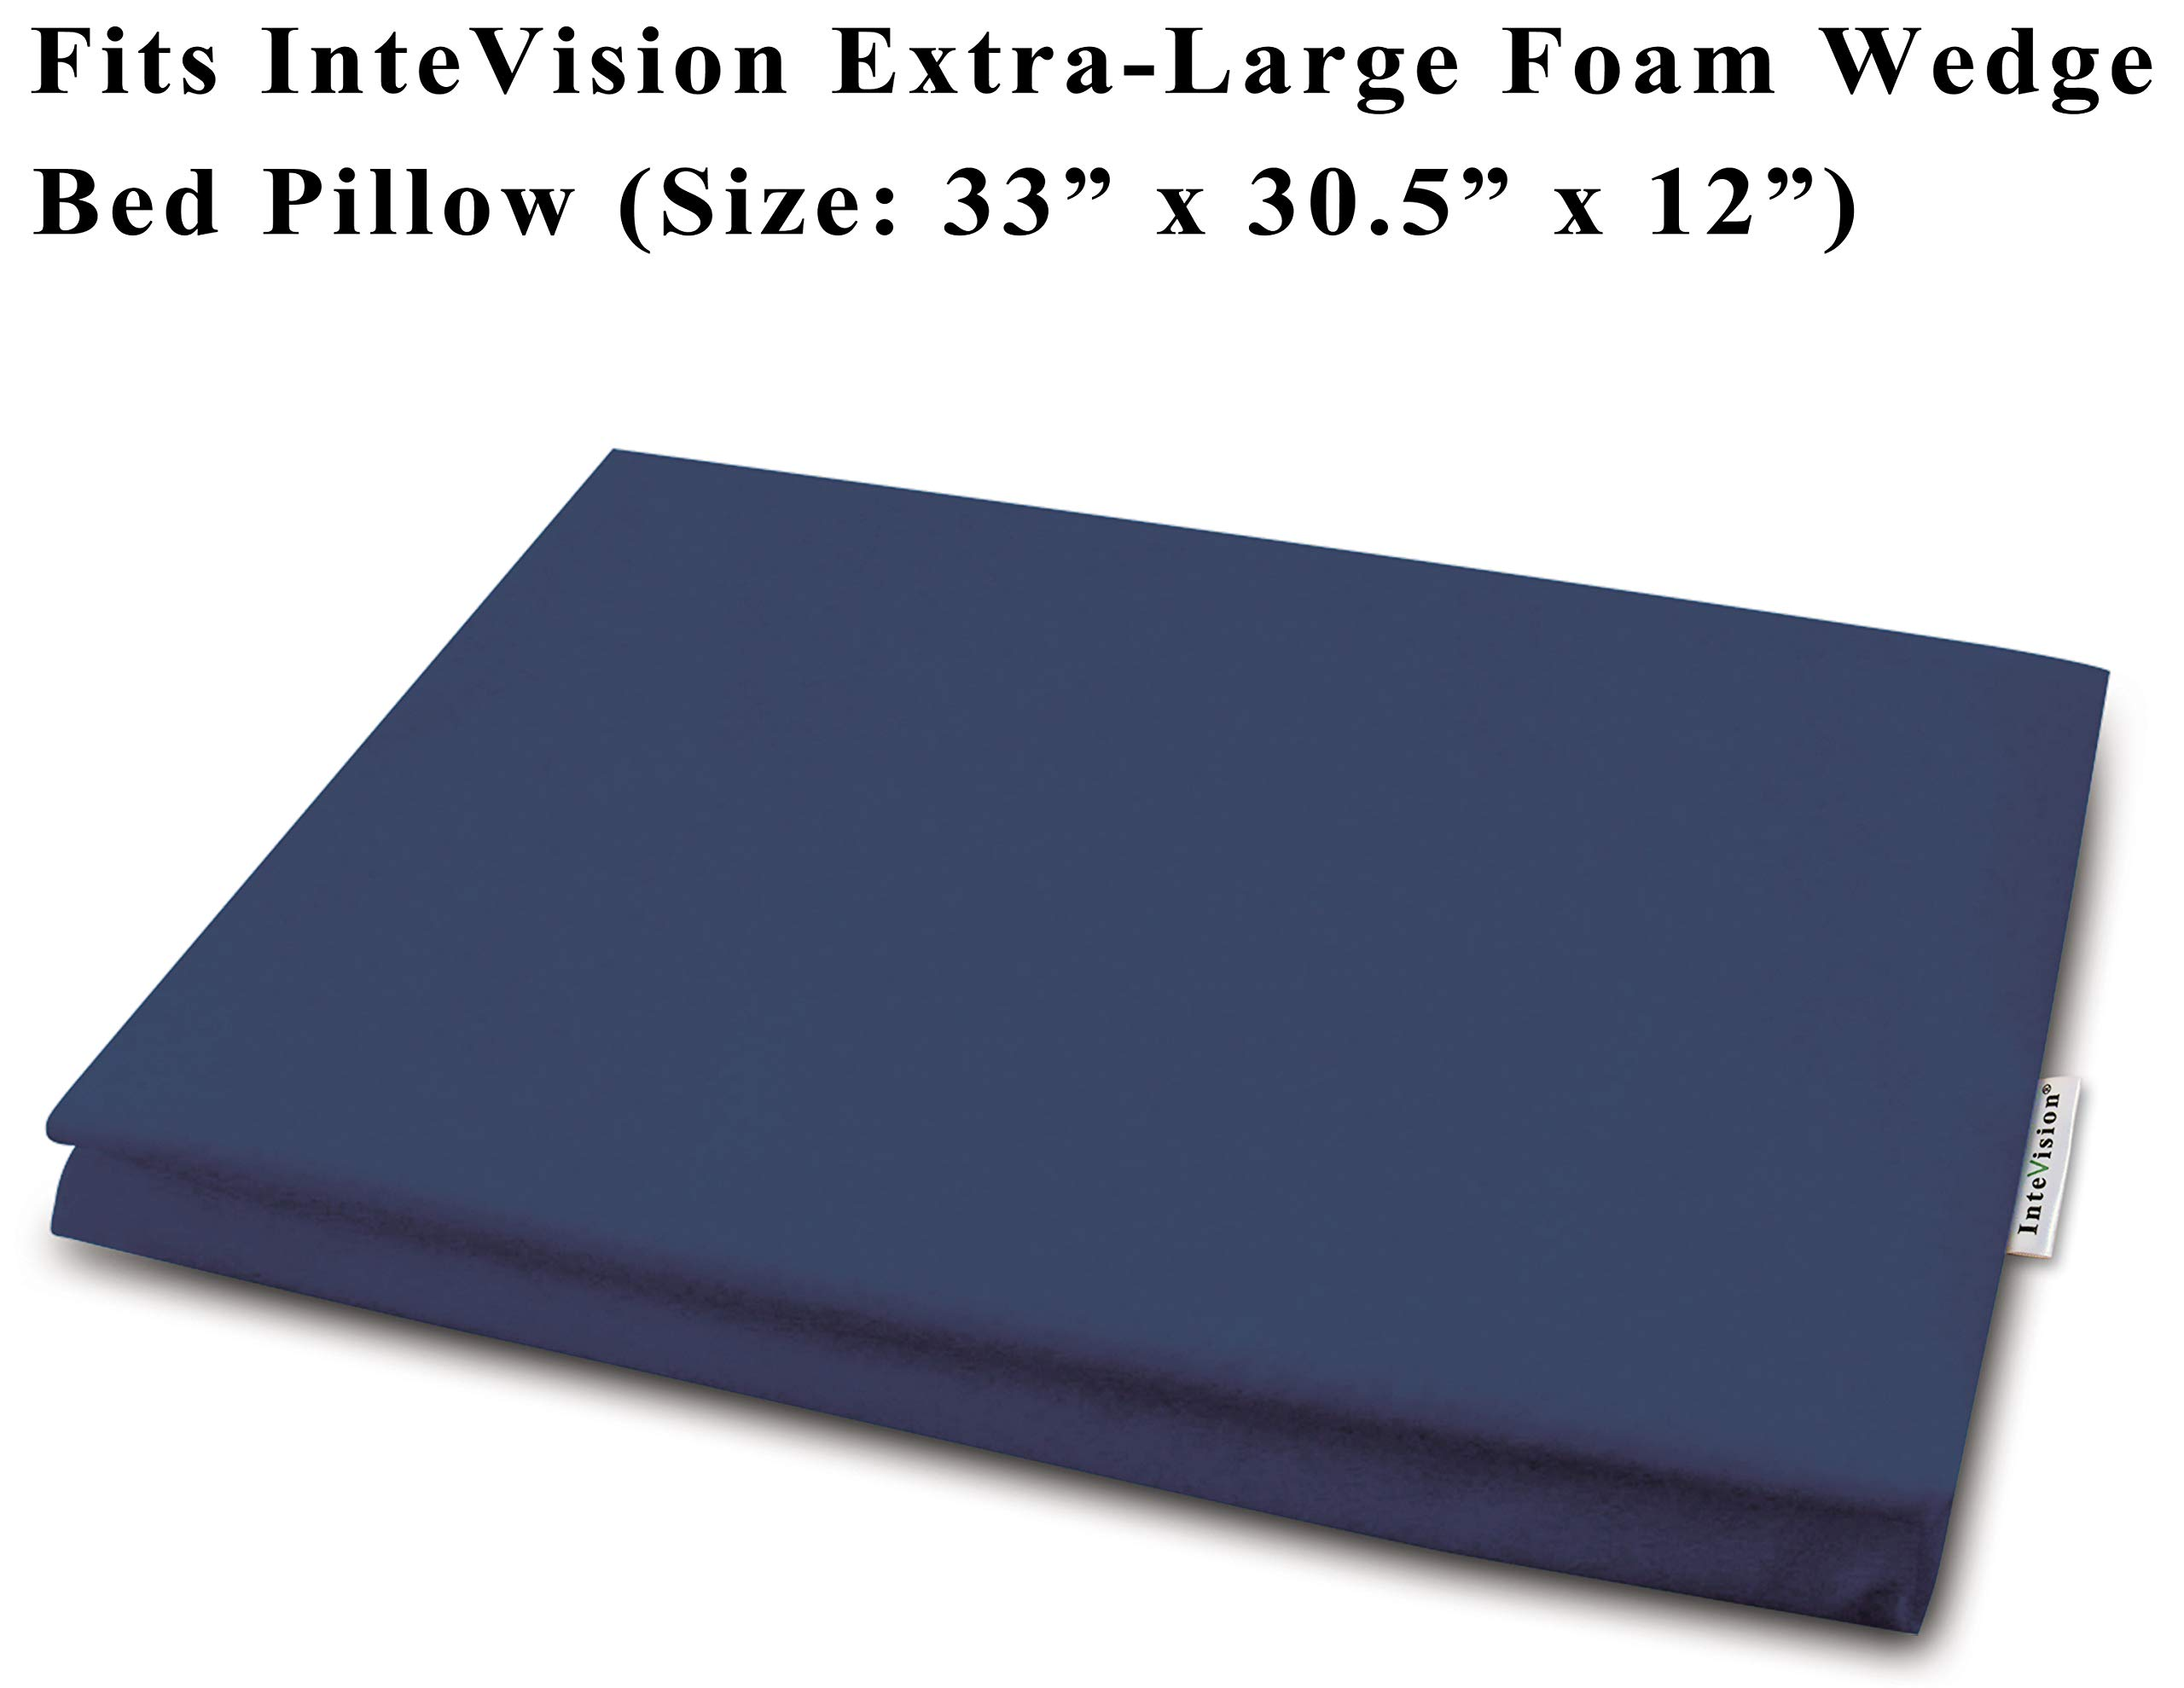 InteVision 400 Thread Count, 100% Egyptian Cotton Pillowcase. Designed to Fit The InteVision Extra-Large Foam Wedge Bed Pillow (33'' x 30.5'' x 12'')